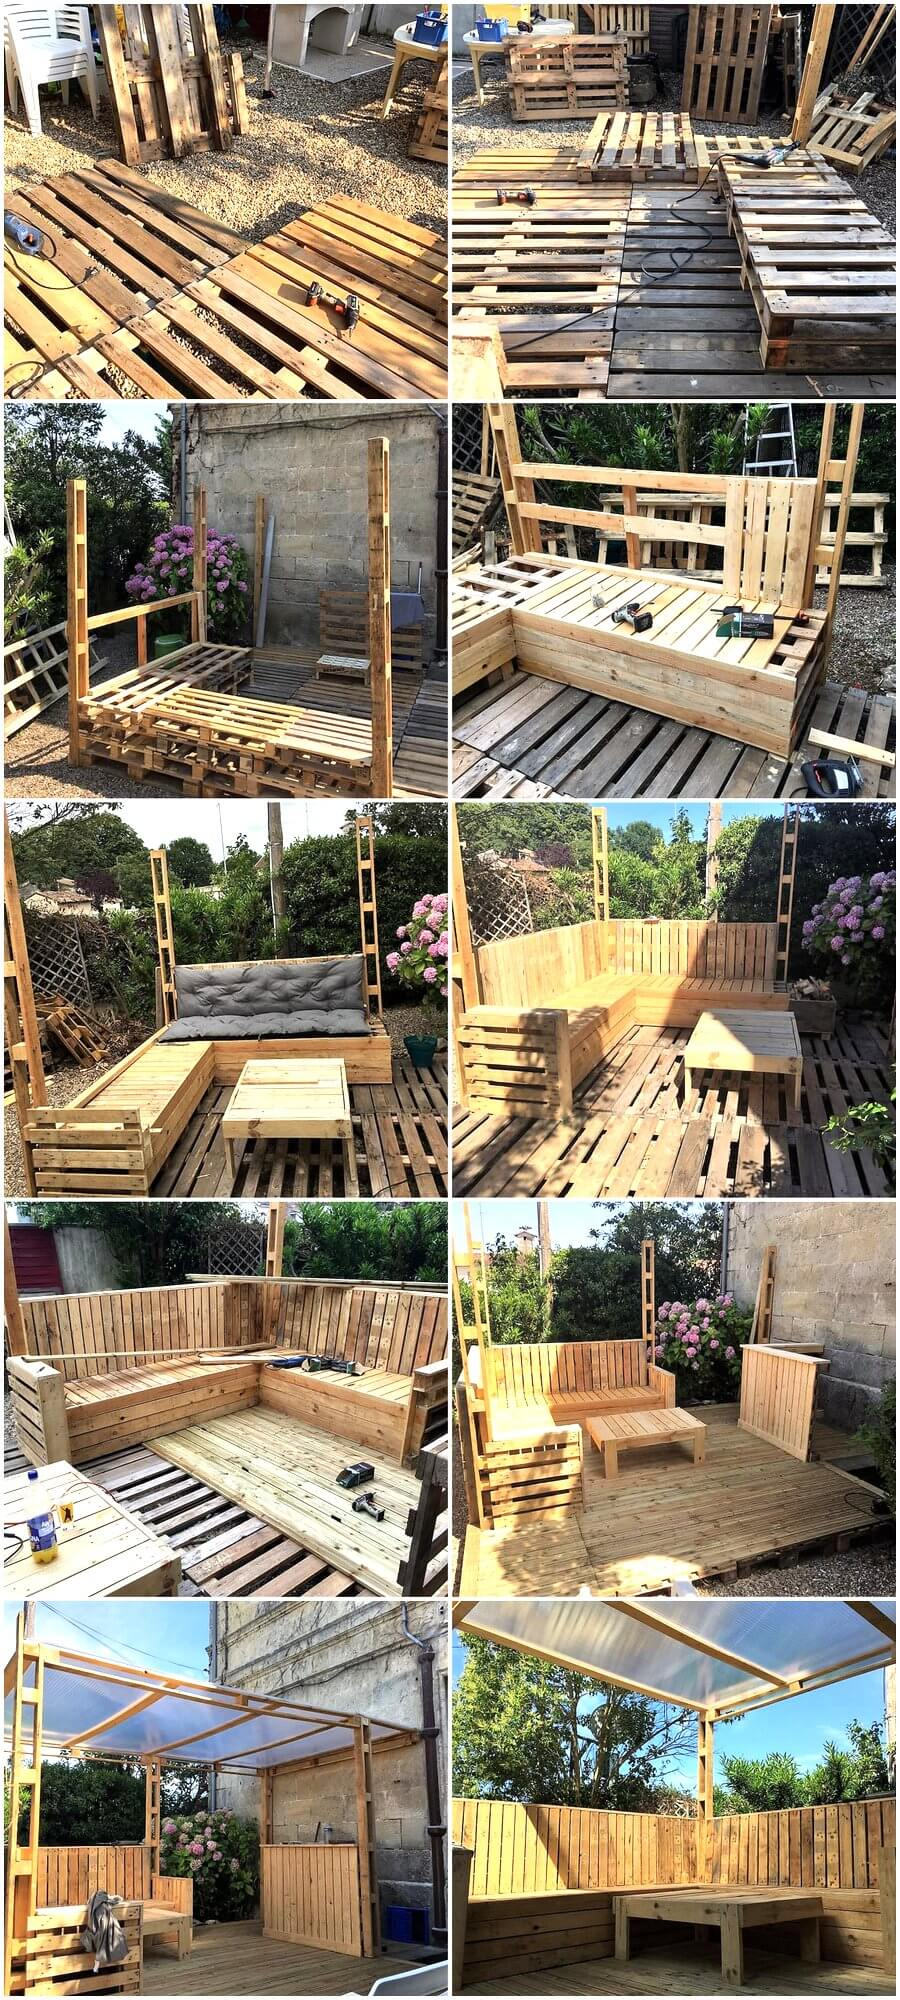 DIY Wood Pallets Patio Gazebo Deck Plan